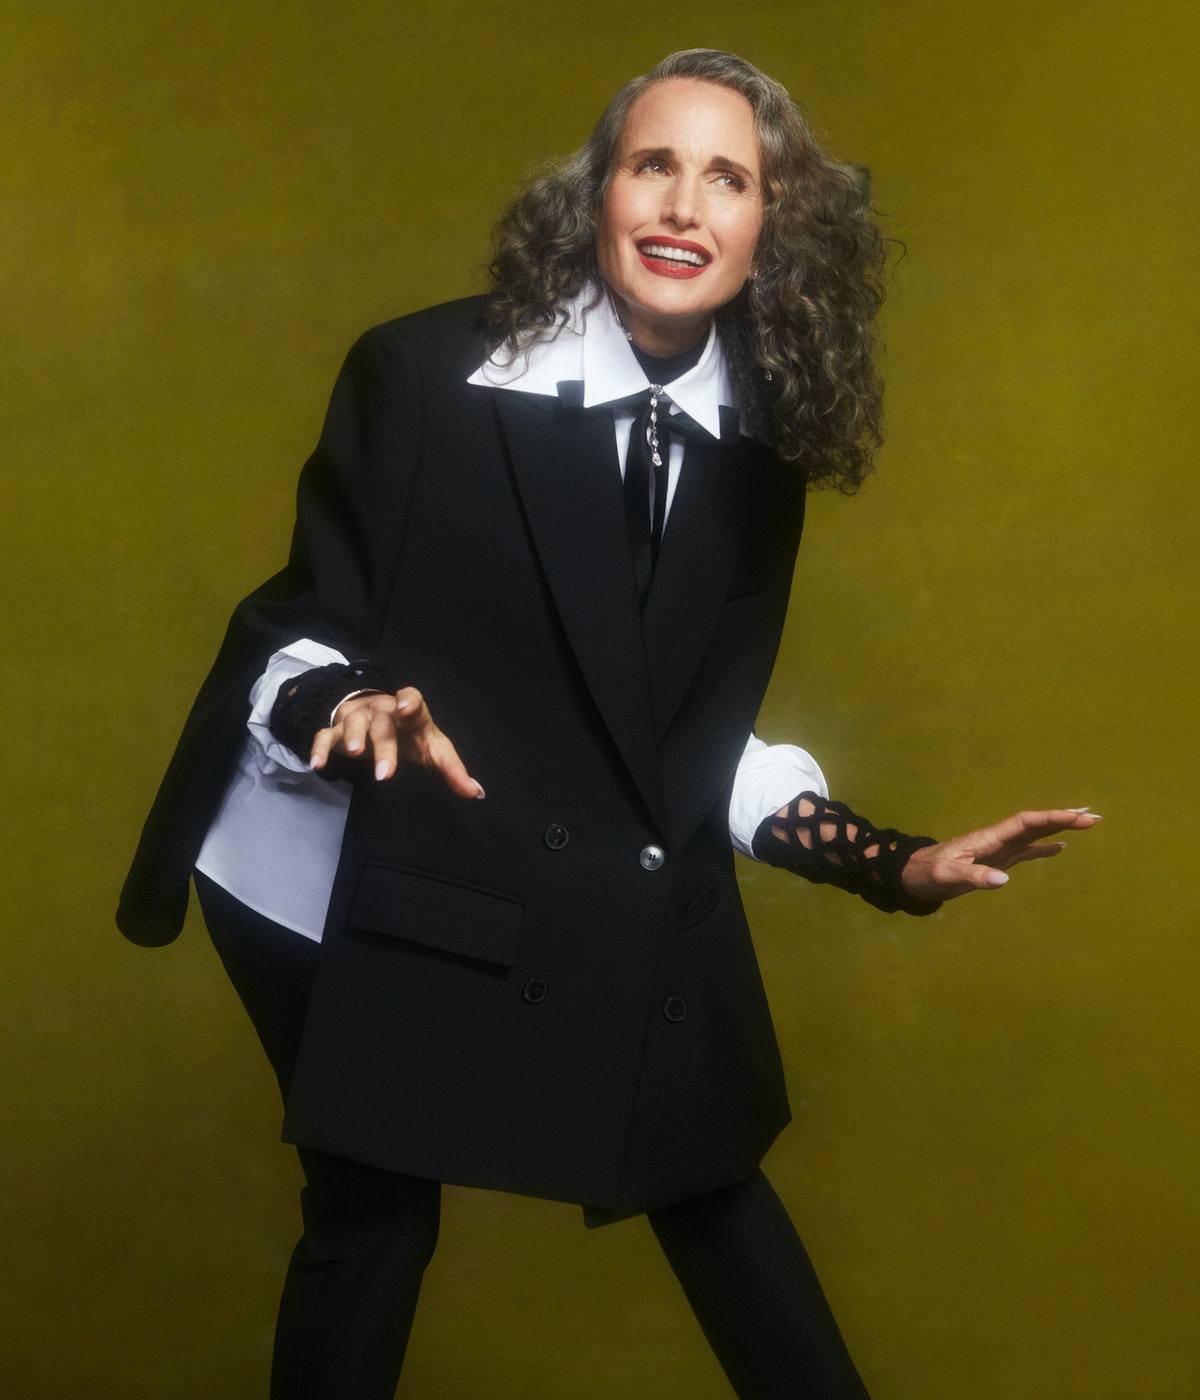 TZR cover star Andie MacDowell poses wearing a black and white Valentino outfit.